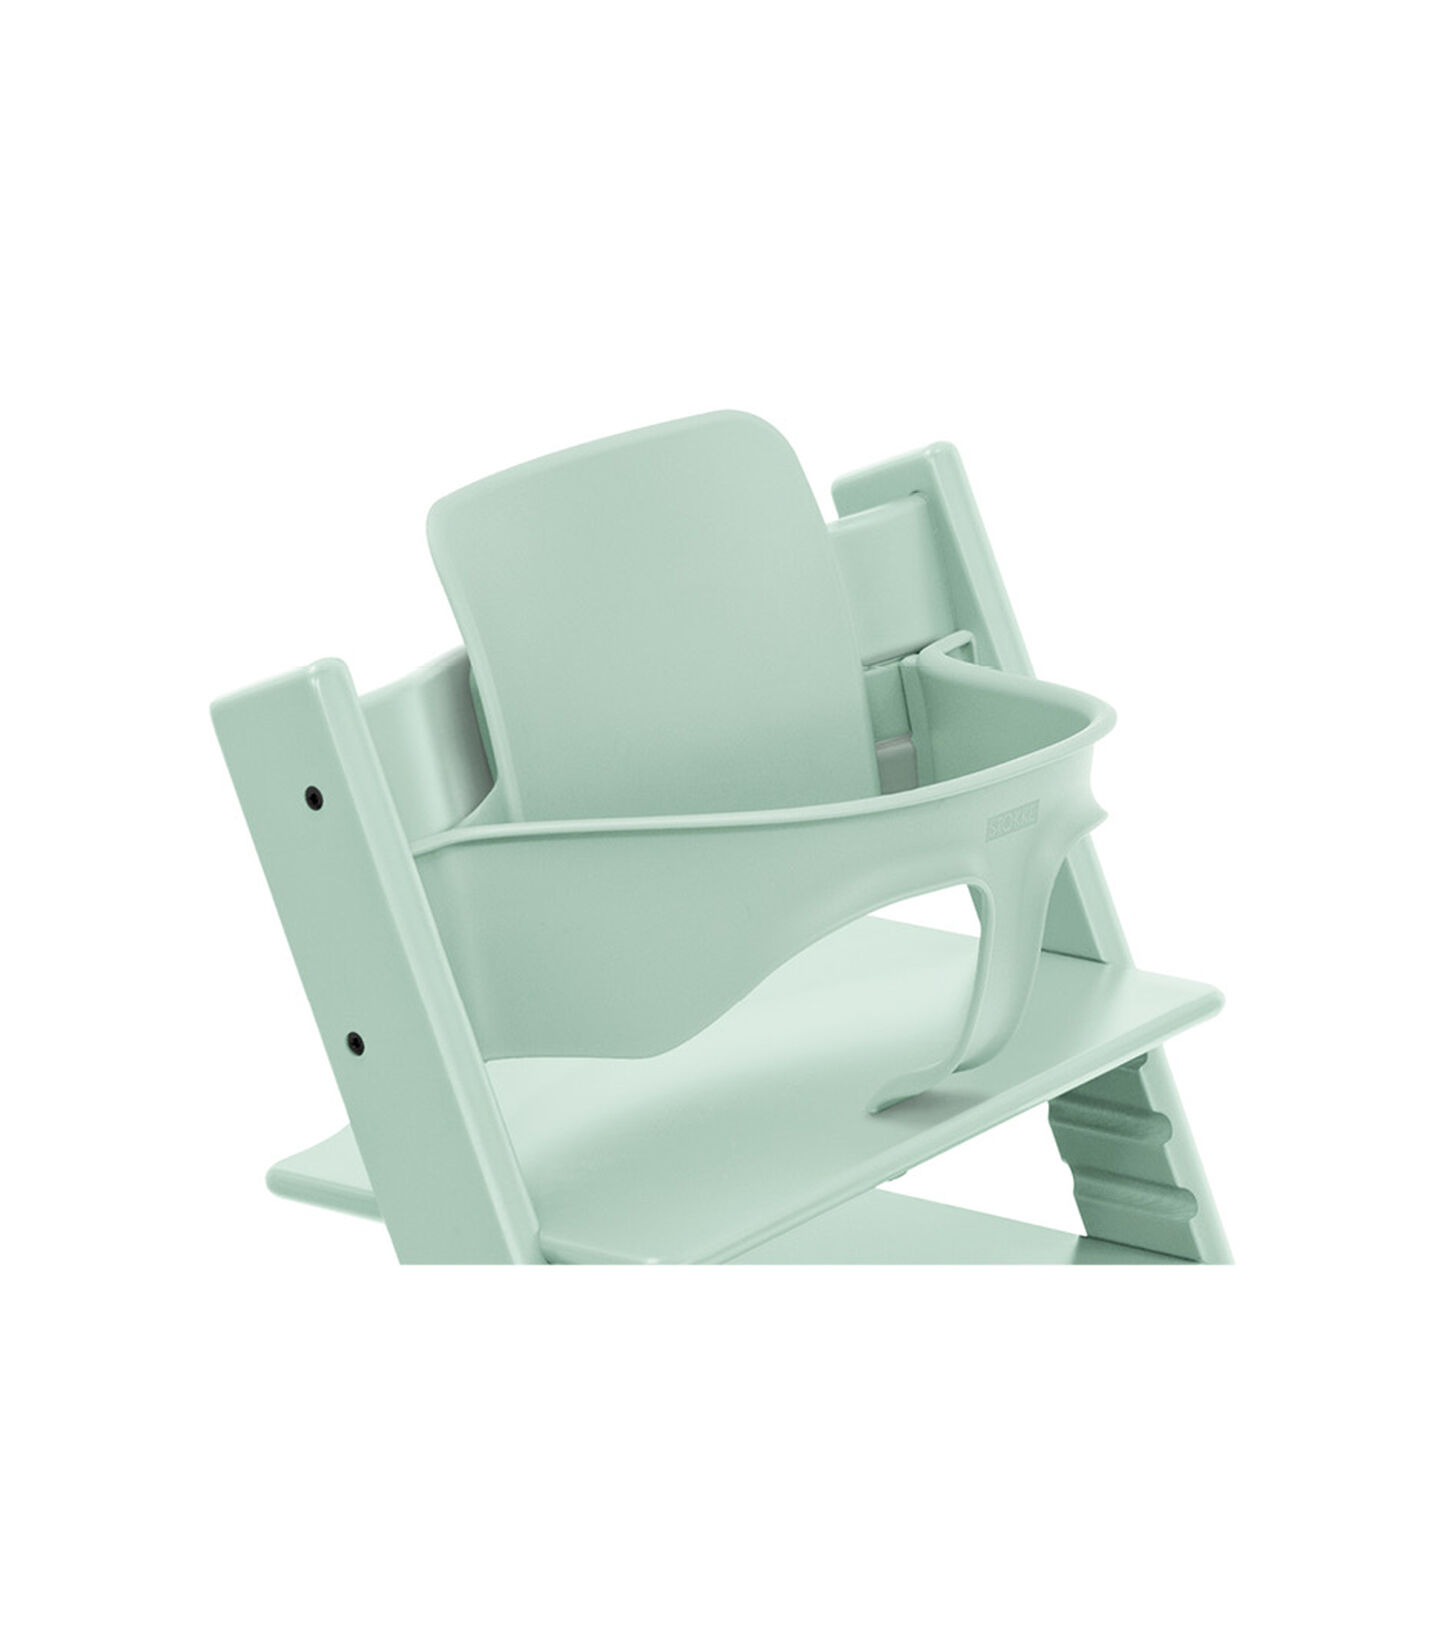 Tripp Trapp® Baby Set Soft Mint, Soft Mint, mainview view 2